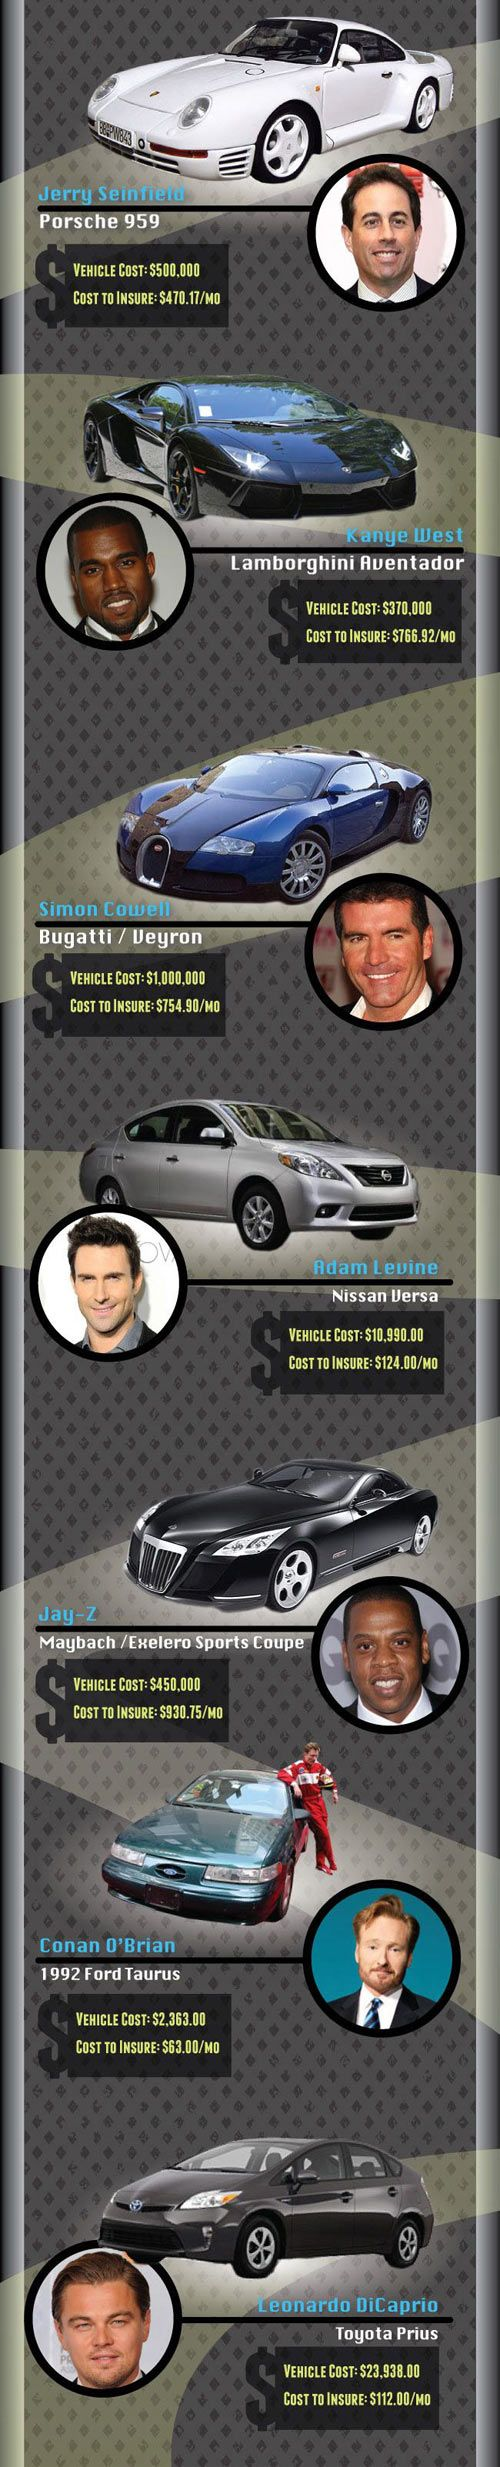 Celebrities and the cars they drive.